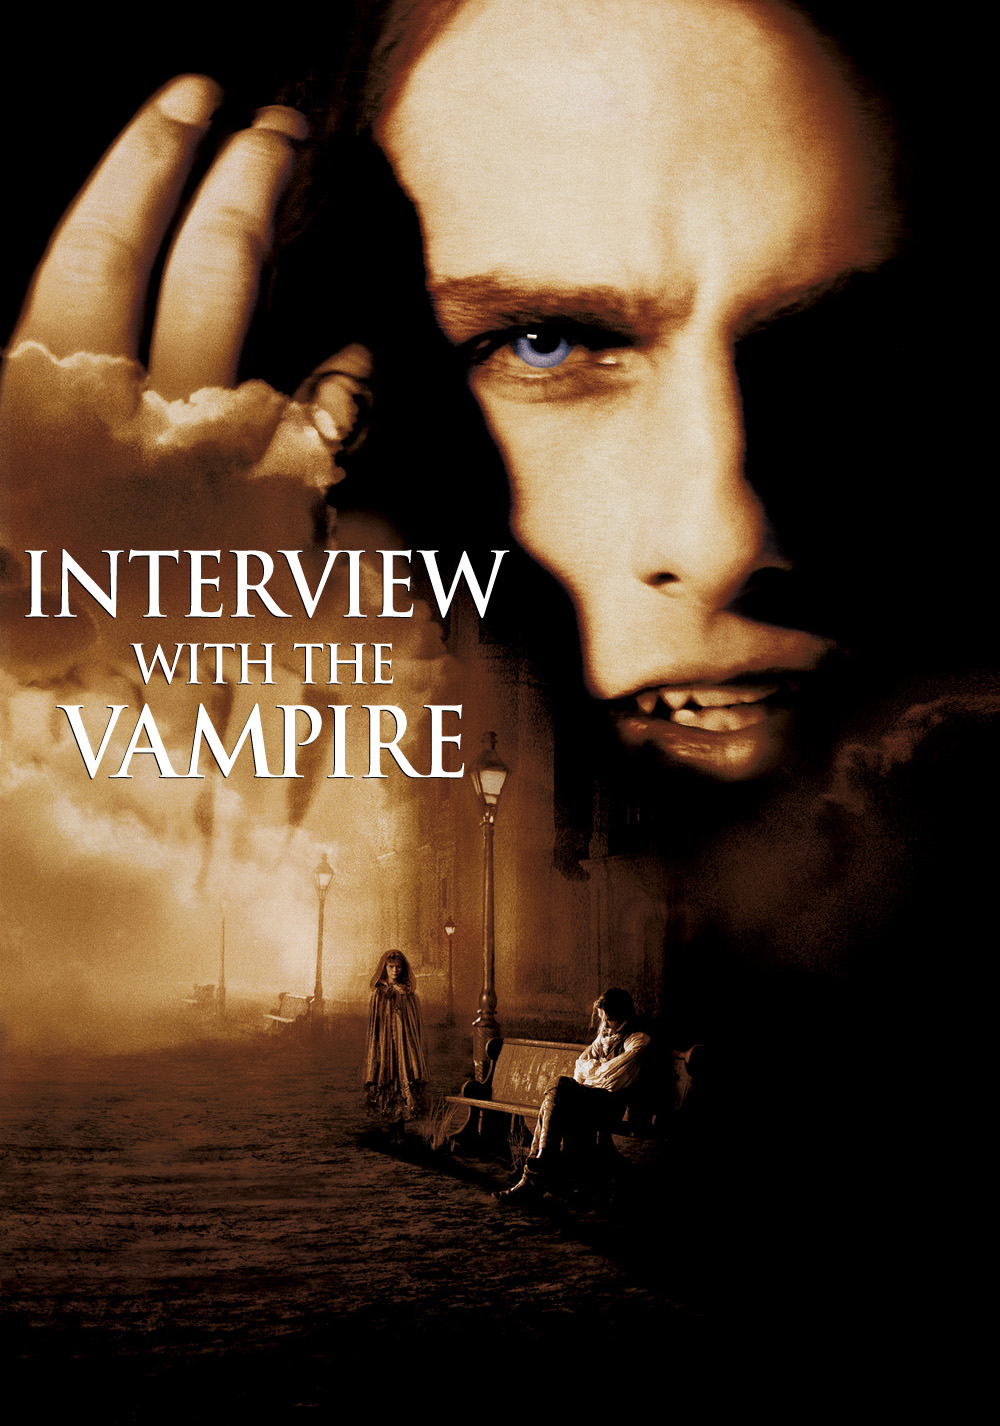 Interview with the Vampire 1994 Cut